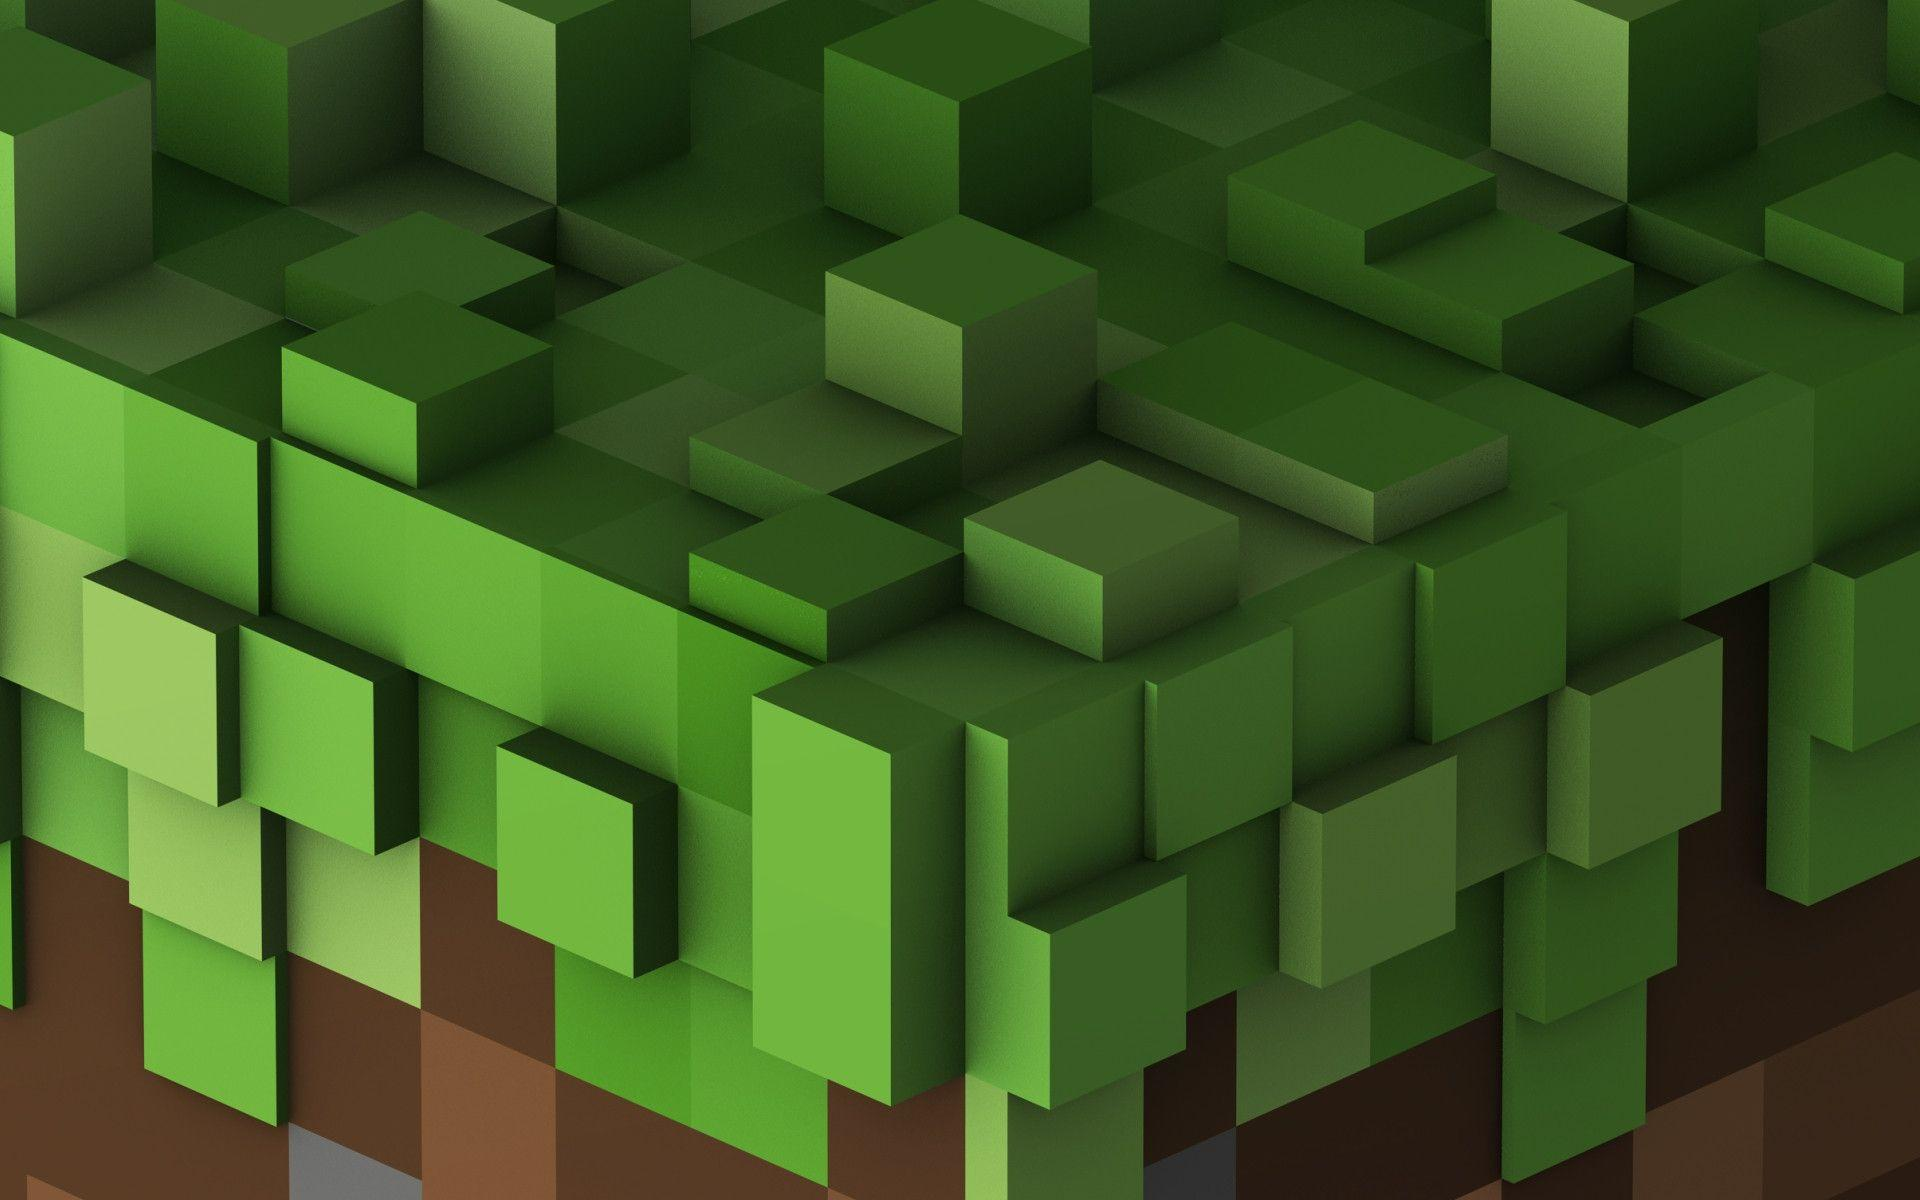 225 Minecraft Wallpapers